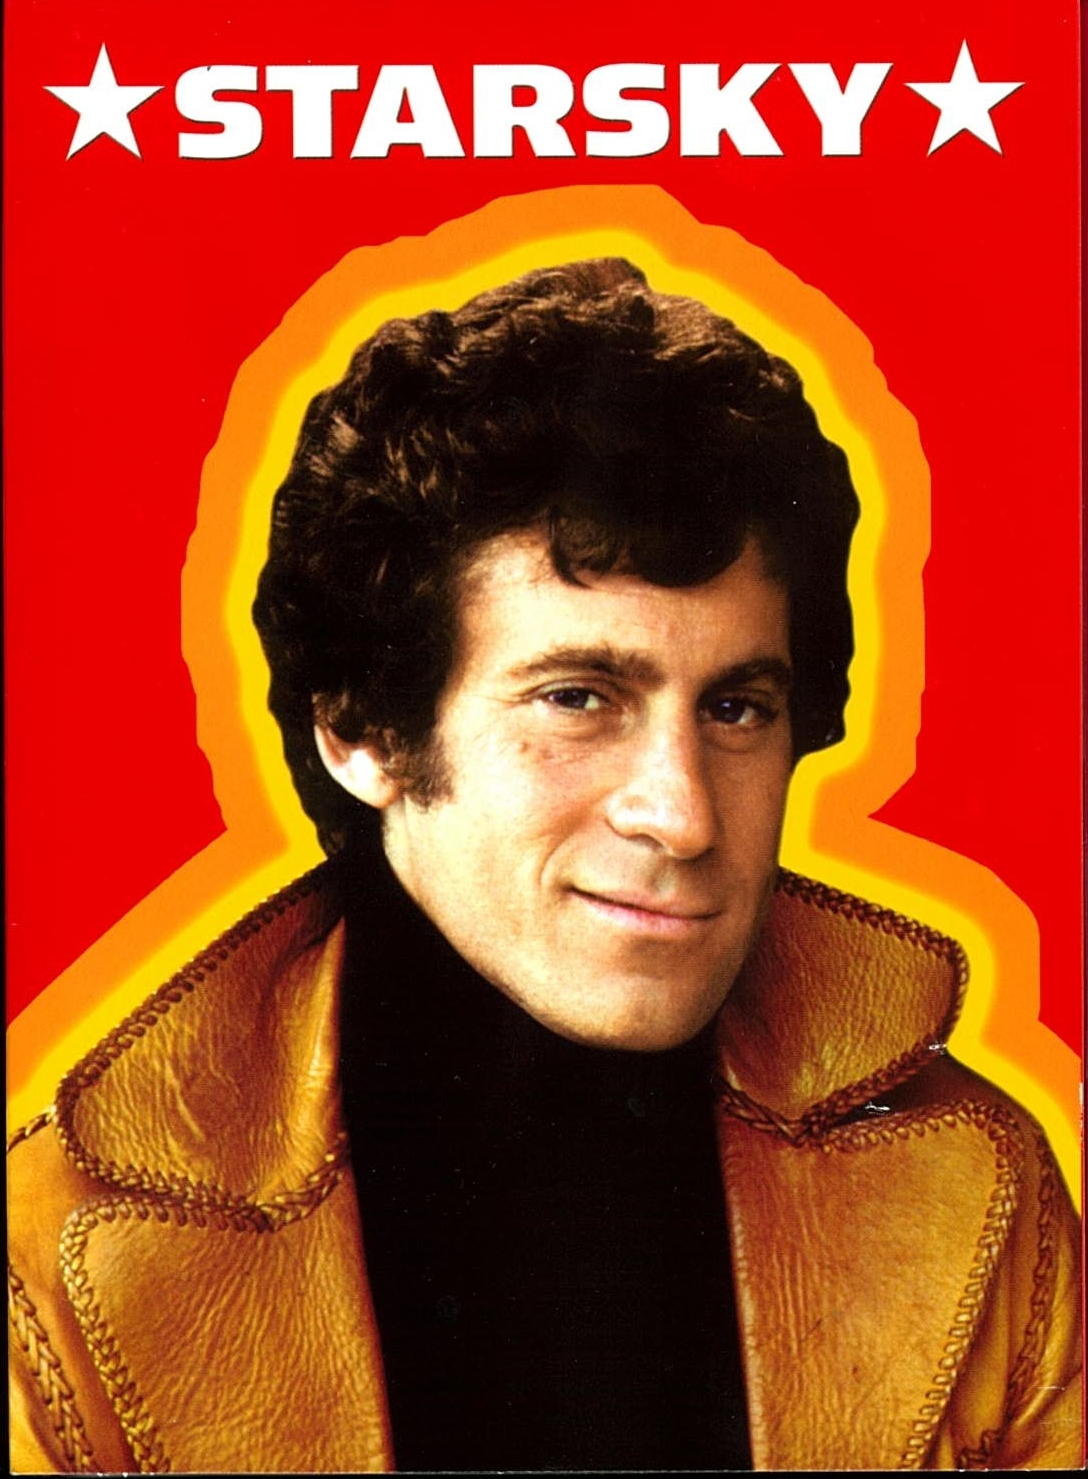 starsky and hutch 1975 images paul michael glaser as starsky hd wallpaper and background. Black Bedroom Furniture Sets. Home Design Ideas